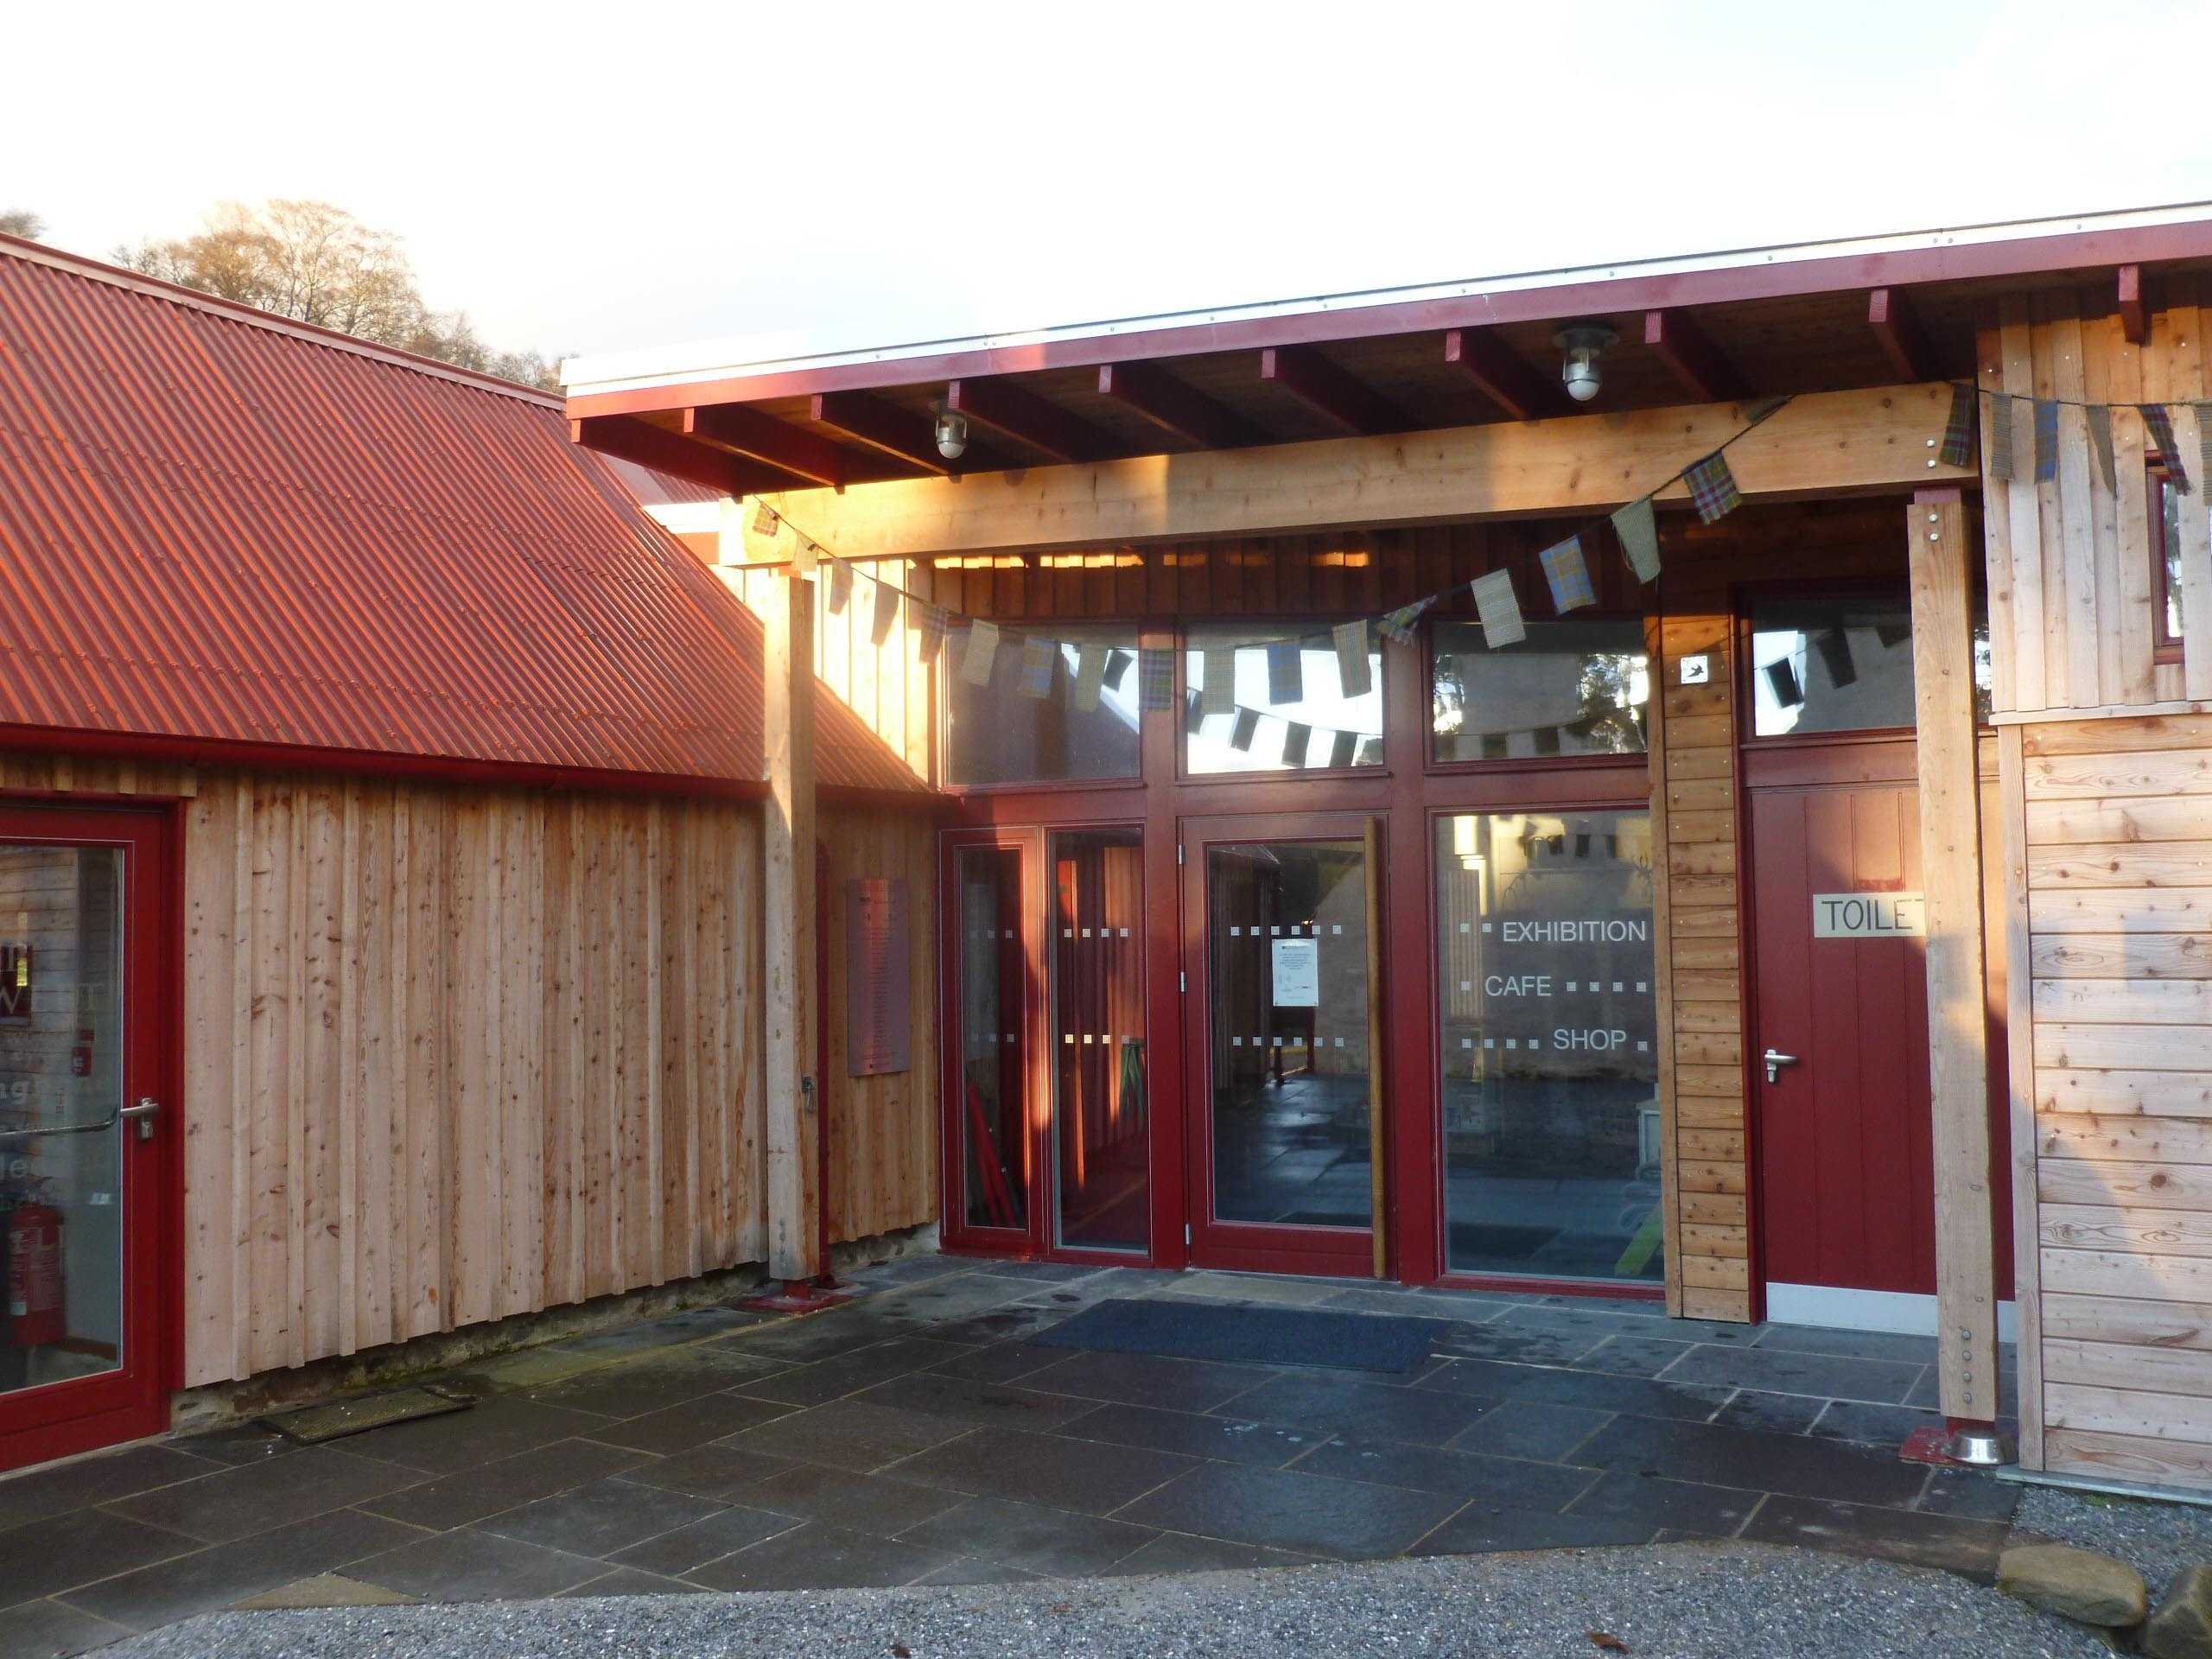 Knockando Woolmill in Aberlour is one of the social enterprises Mr Hinata will be visiting